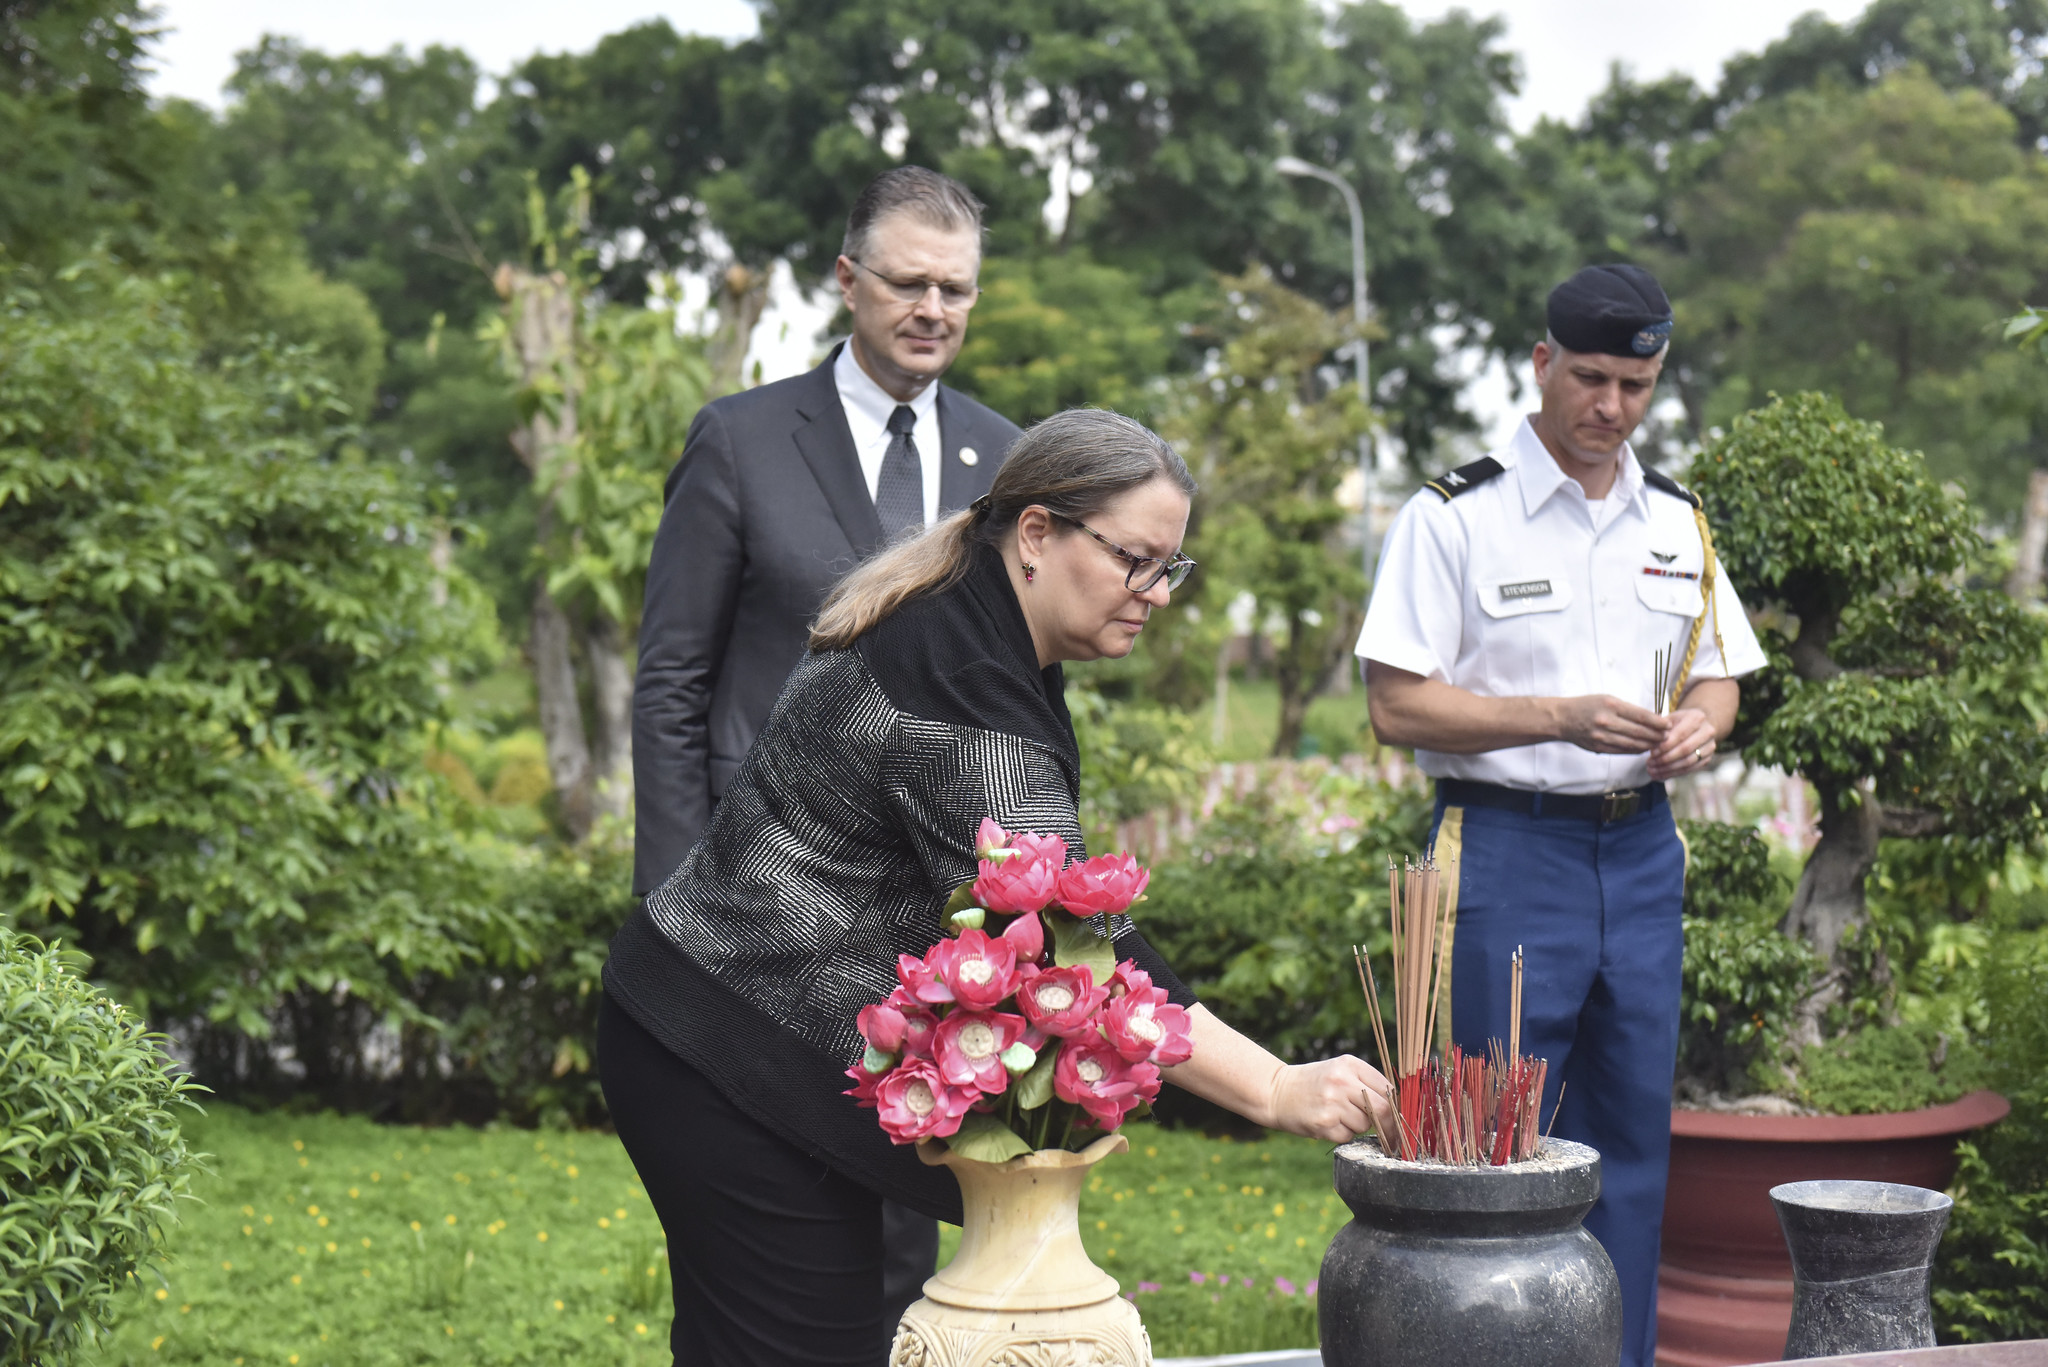 Marie Damour, Ambassador Daniel Kritenbrink, and U.S. Defense Attache Colonel Stevenson pay respects at the Ho Chi Minh City Military Martyrs' Cemetery on June 21, 2020. Photo: U.S. Consulate in Ho Chi Minh City